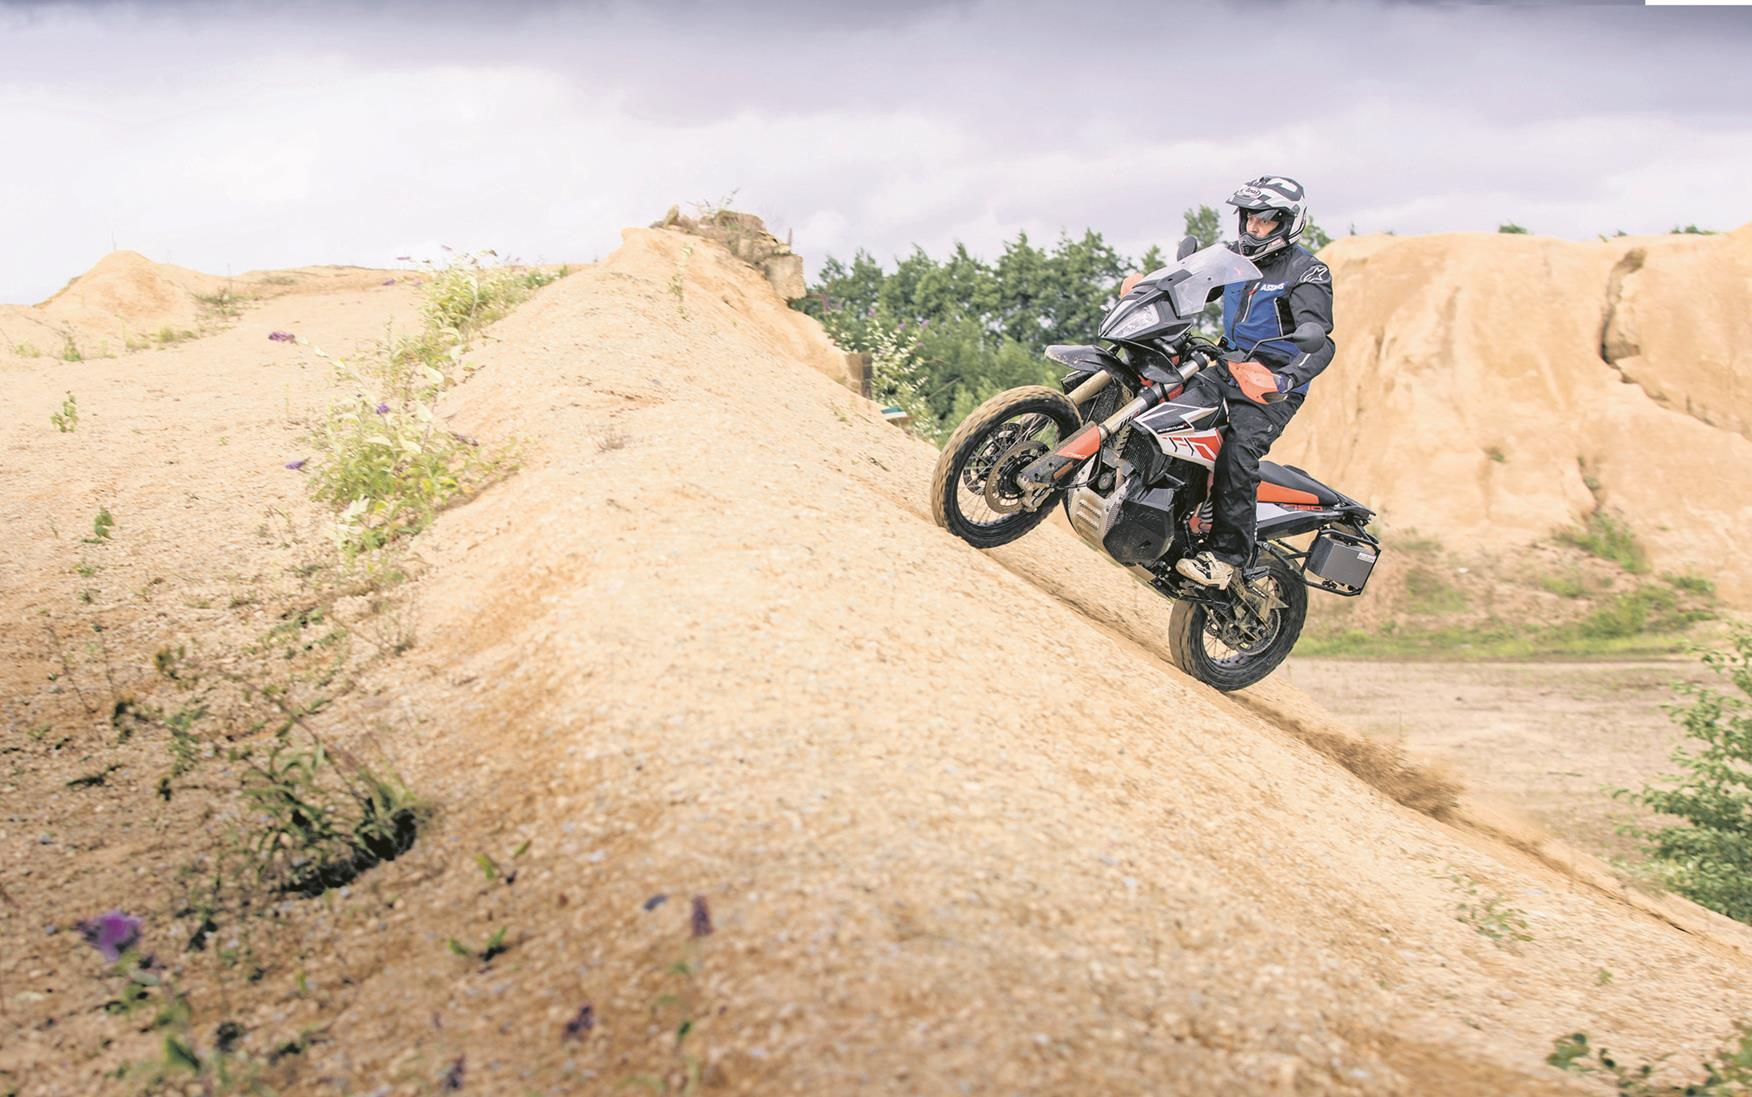 Tackling off-road aboard the KTM 790 Adventure R